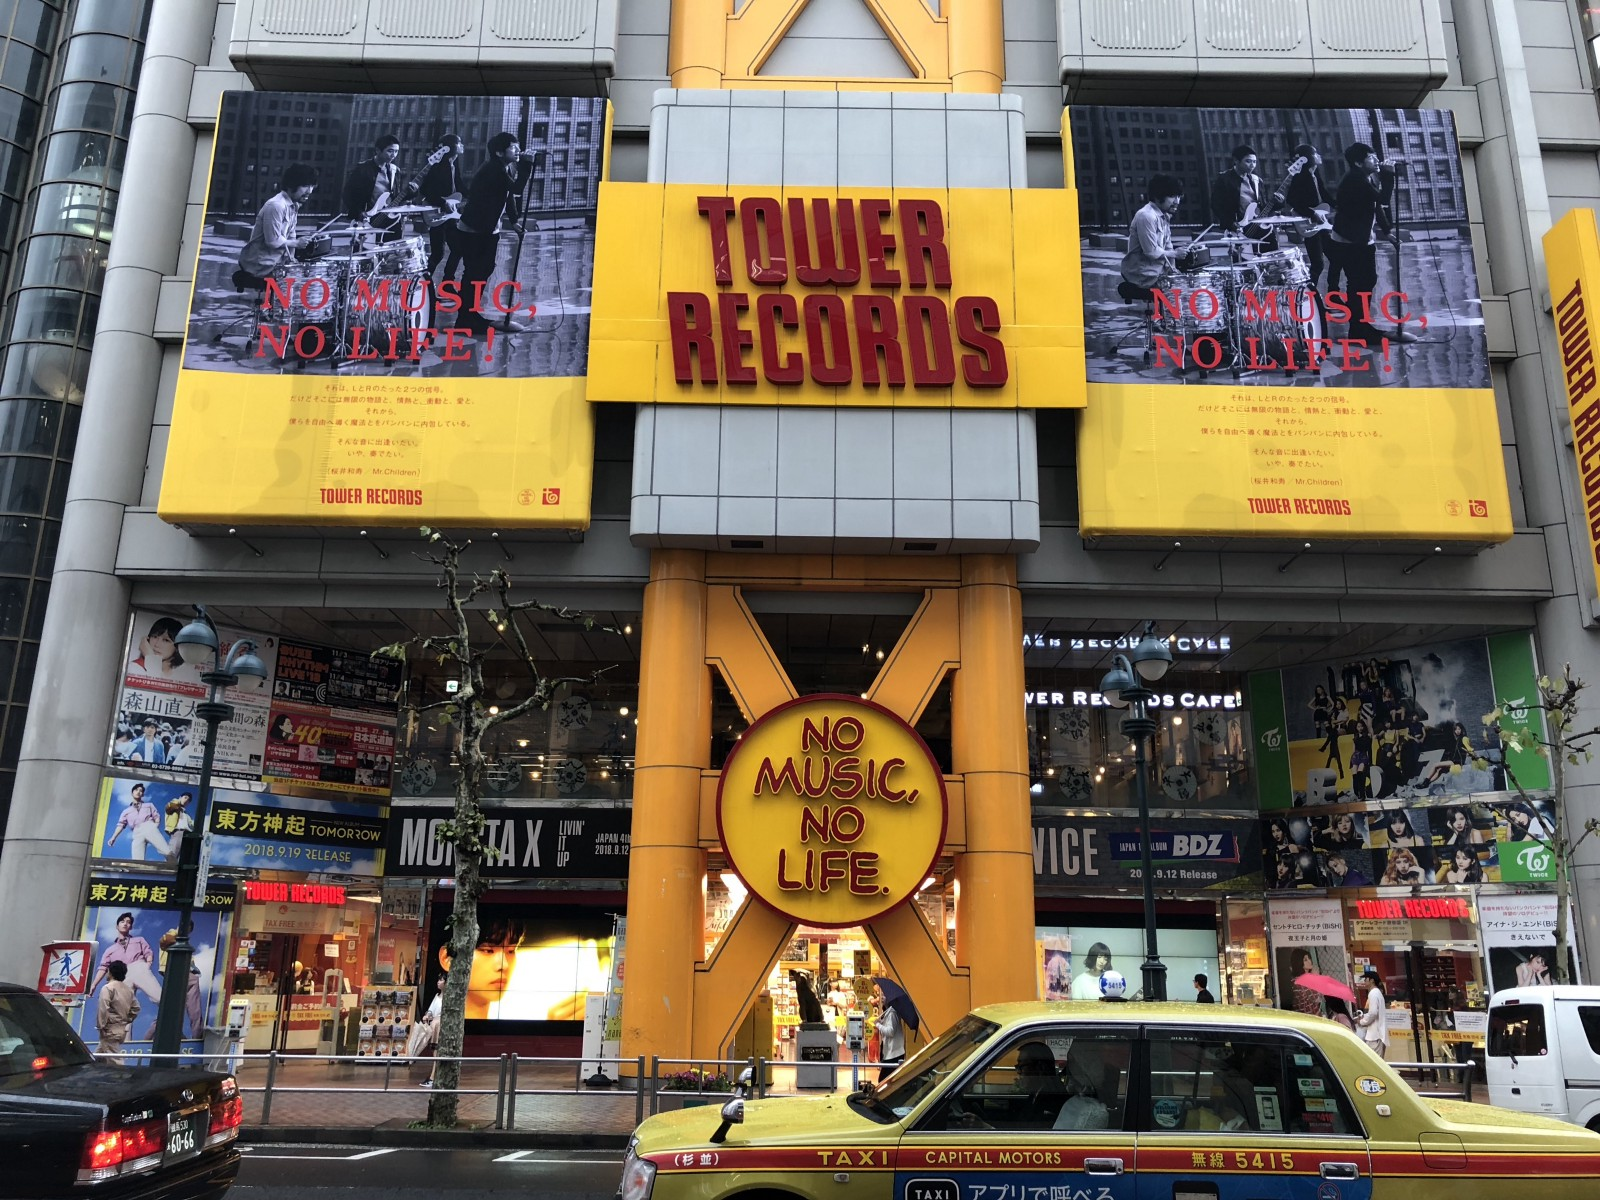 The shop front of Tower Record Shibuya store